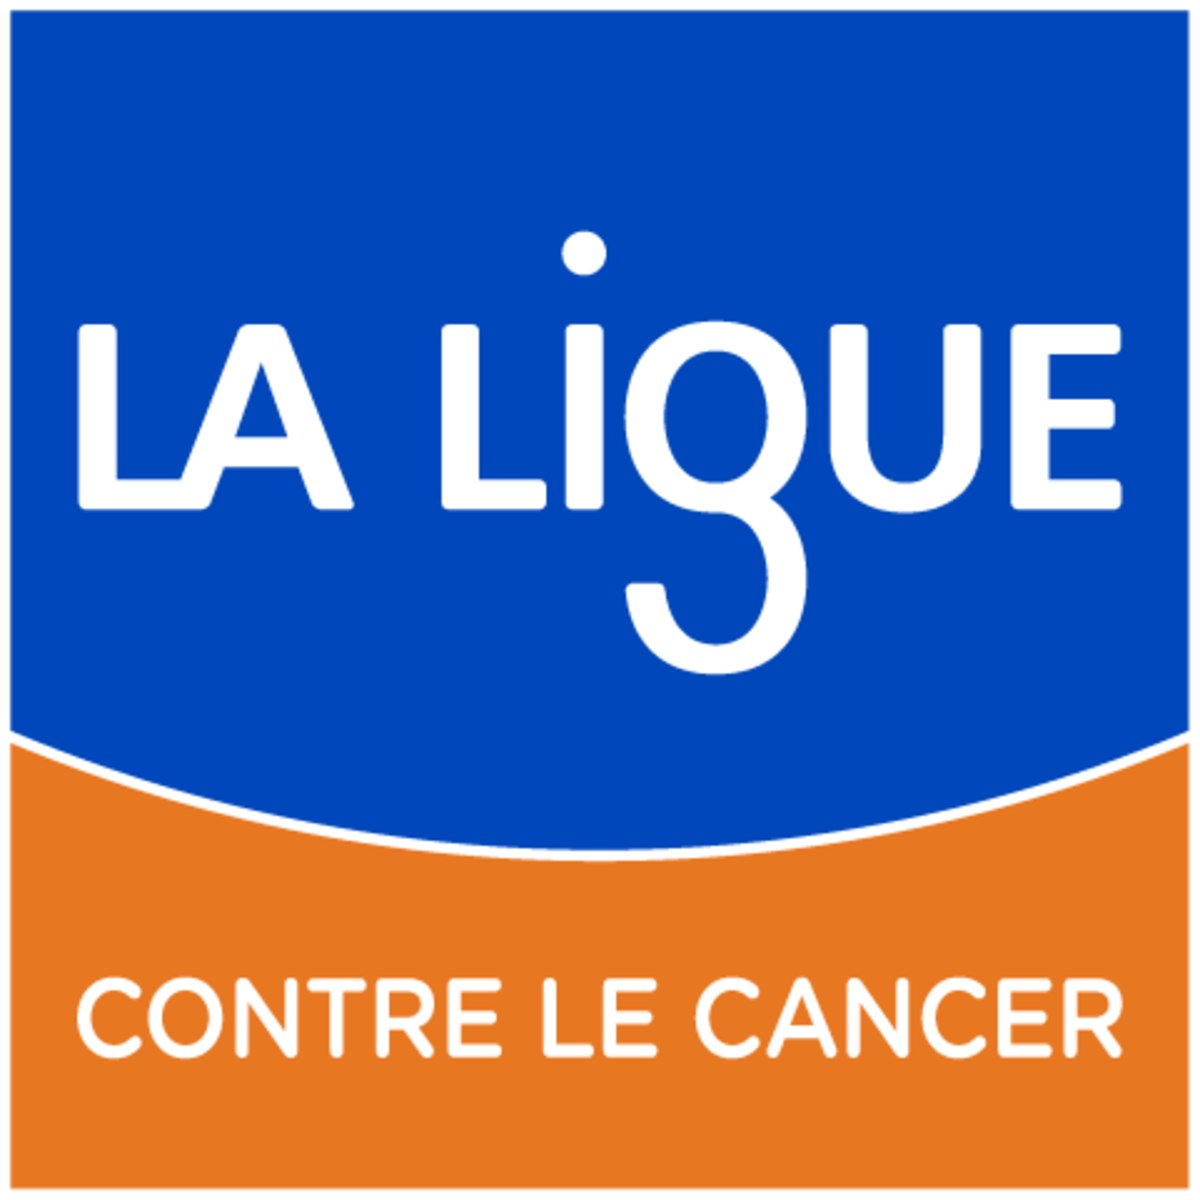 https://rouenmetrobasket.com/wp-content/uploads/2019/11/LIGUE-CONTRE-LE-CANCER-LOGO.jpg